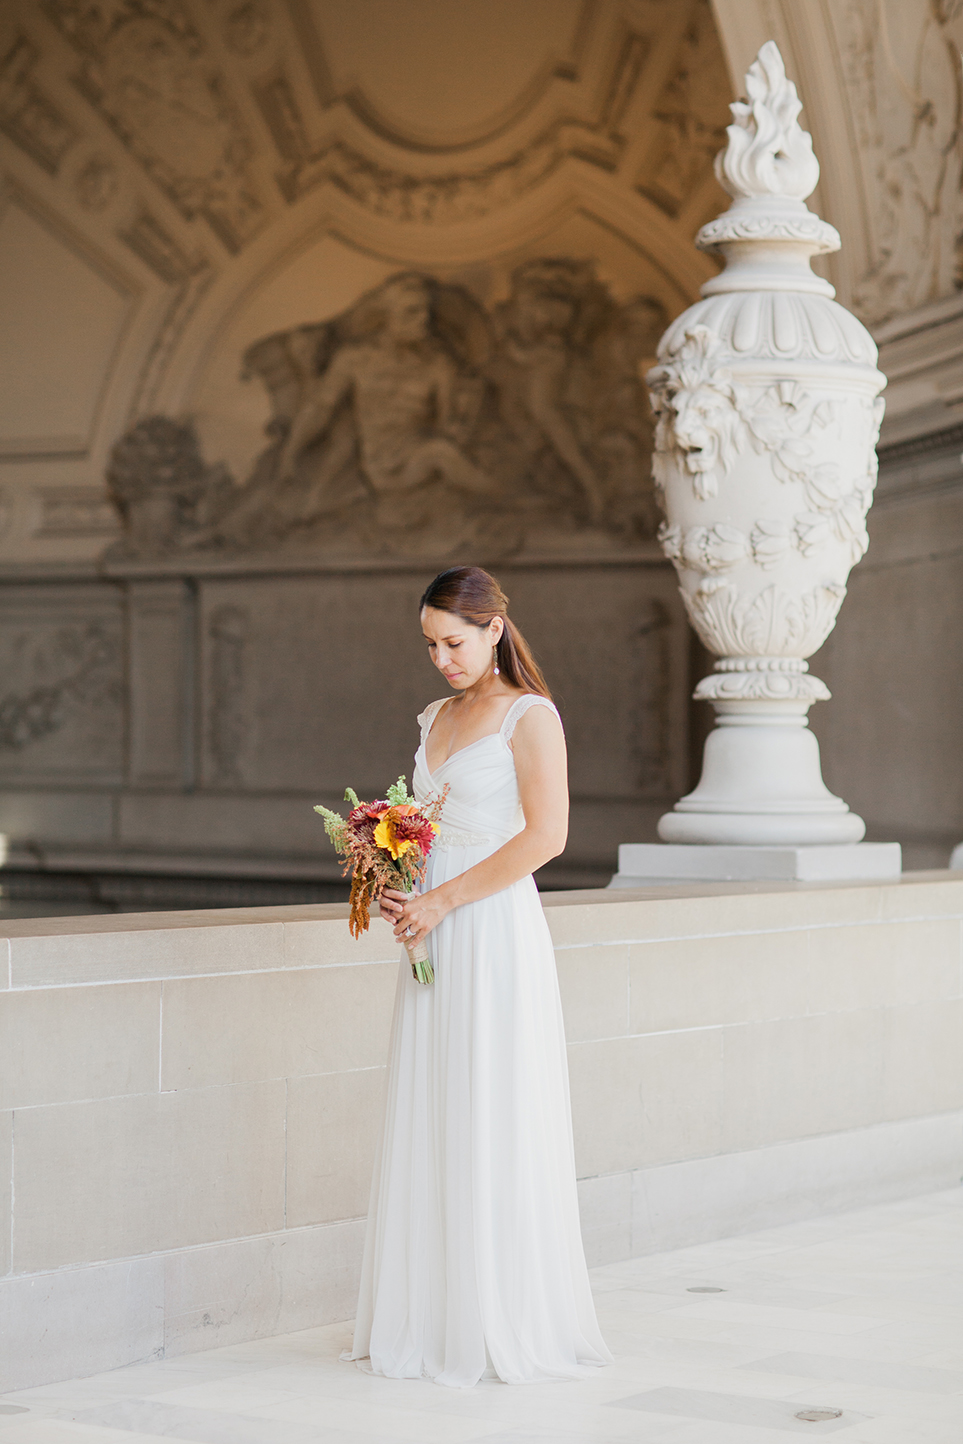 Simple portrait of bride after eloping in San Francisco City Hall.